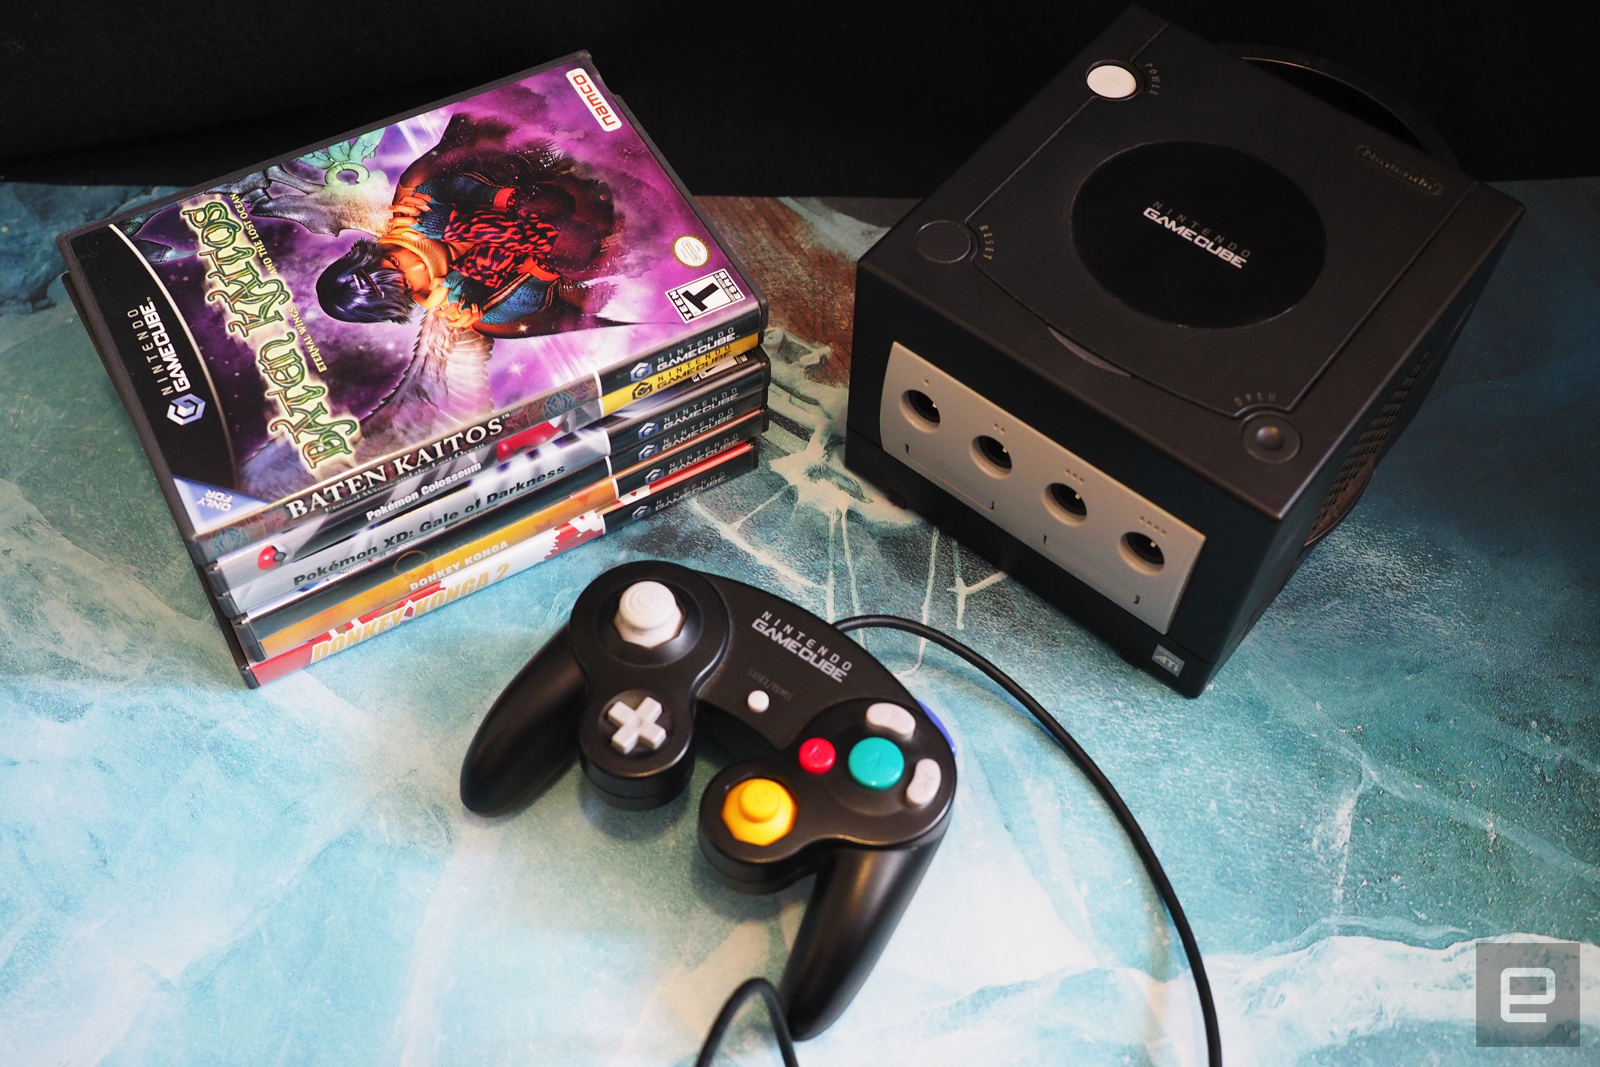 The GameCube games we still love, 20 years later